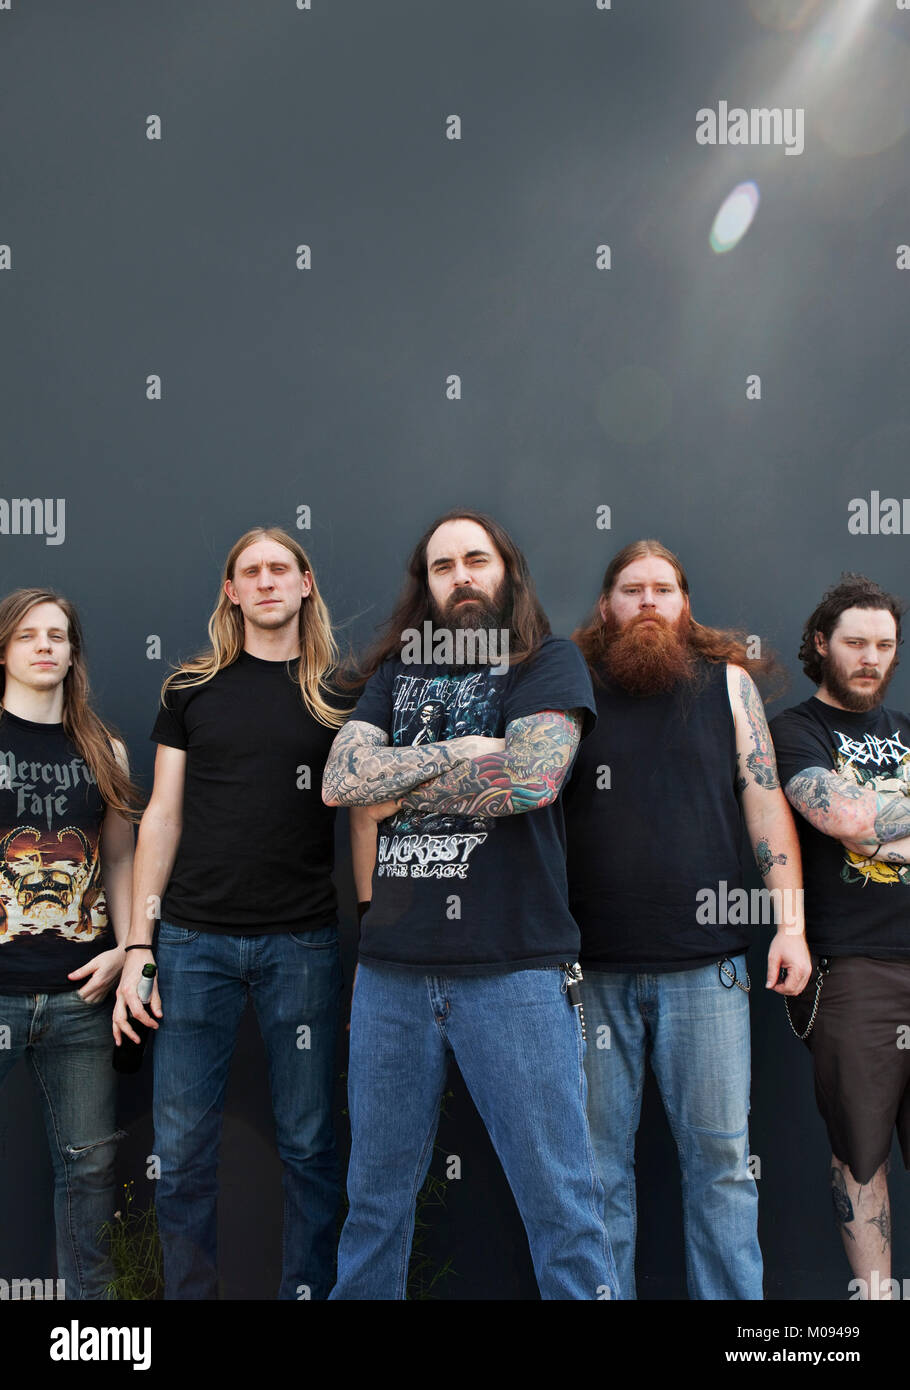 The American heavy metal band Skeletonwitch originates from Ohio and is here pictured at a live tour in Europe. - Stock Image